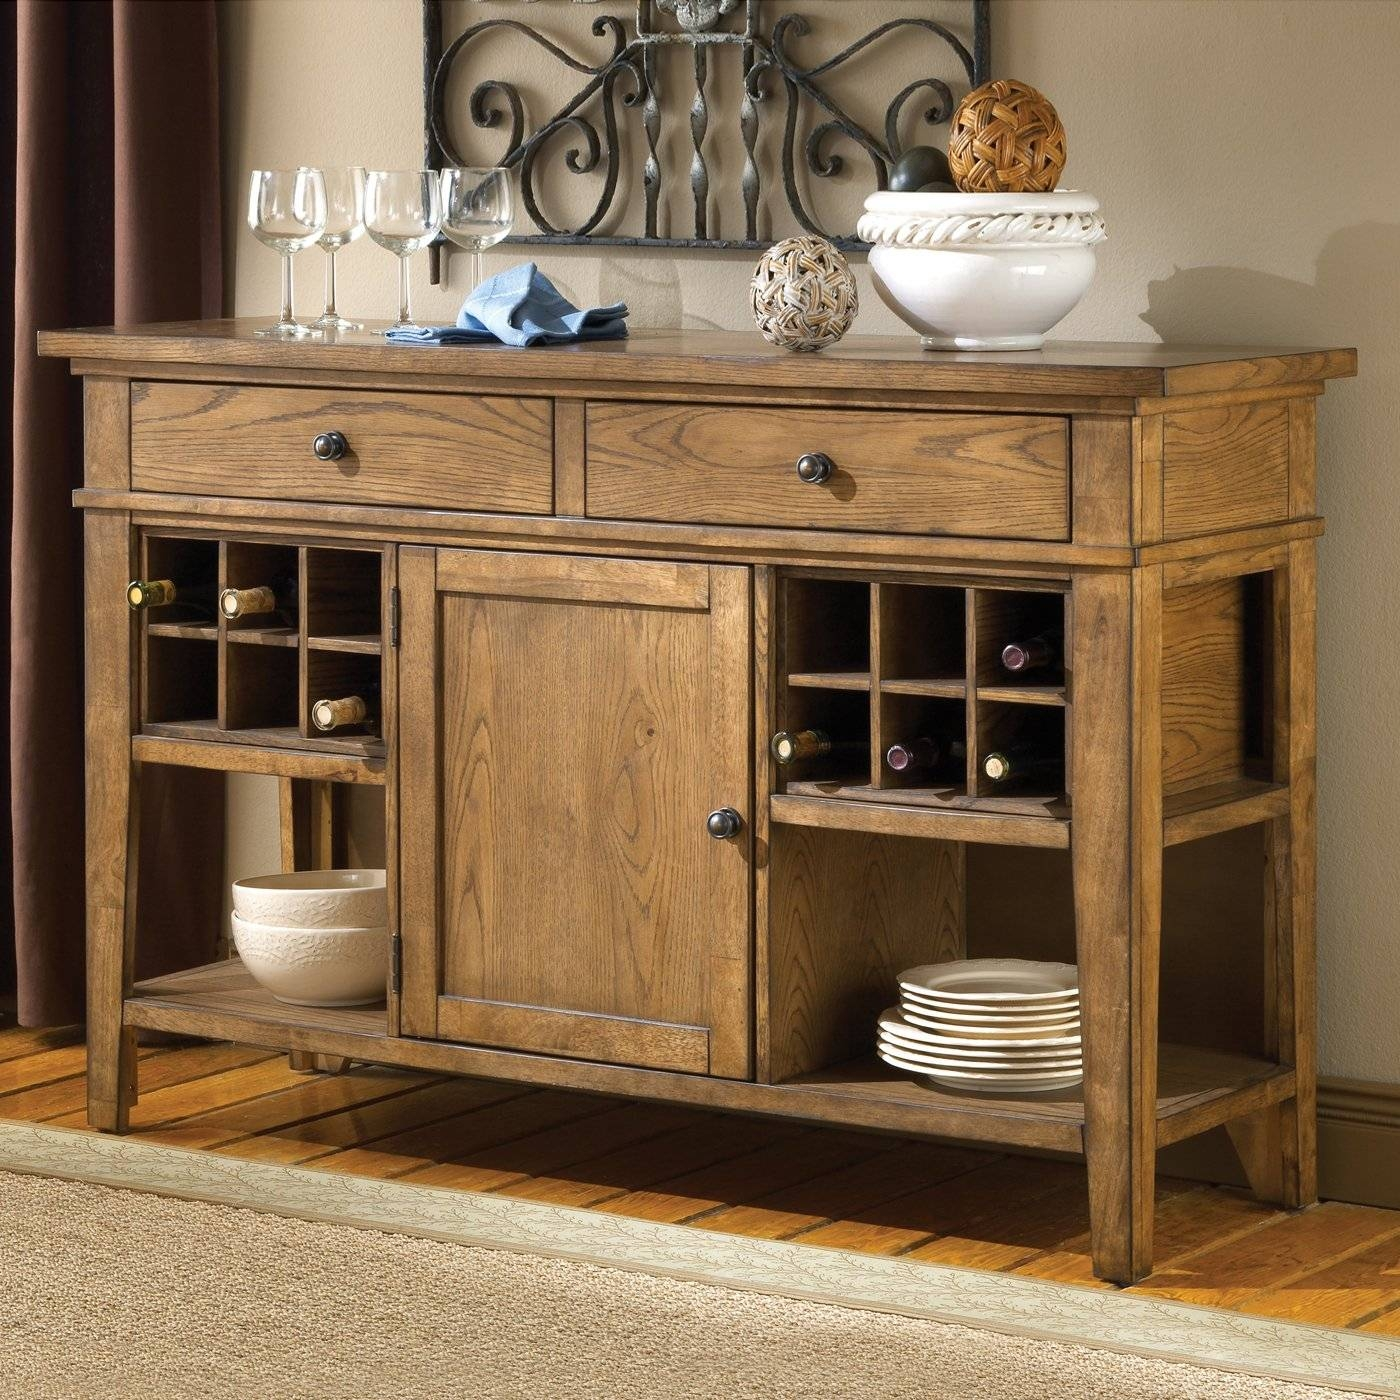 Traditional Dining Room Sideboards And Buffets : Rustic Dining Within Rustic Buffet Sideboards (View 13 of 15)